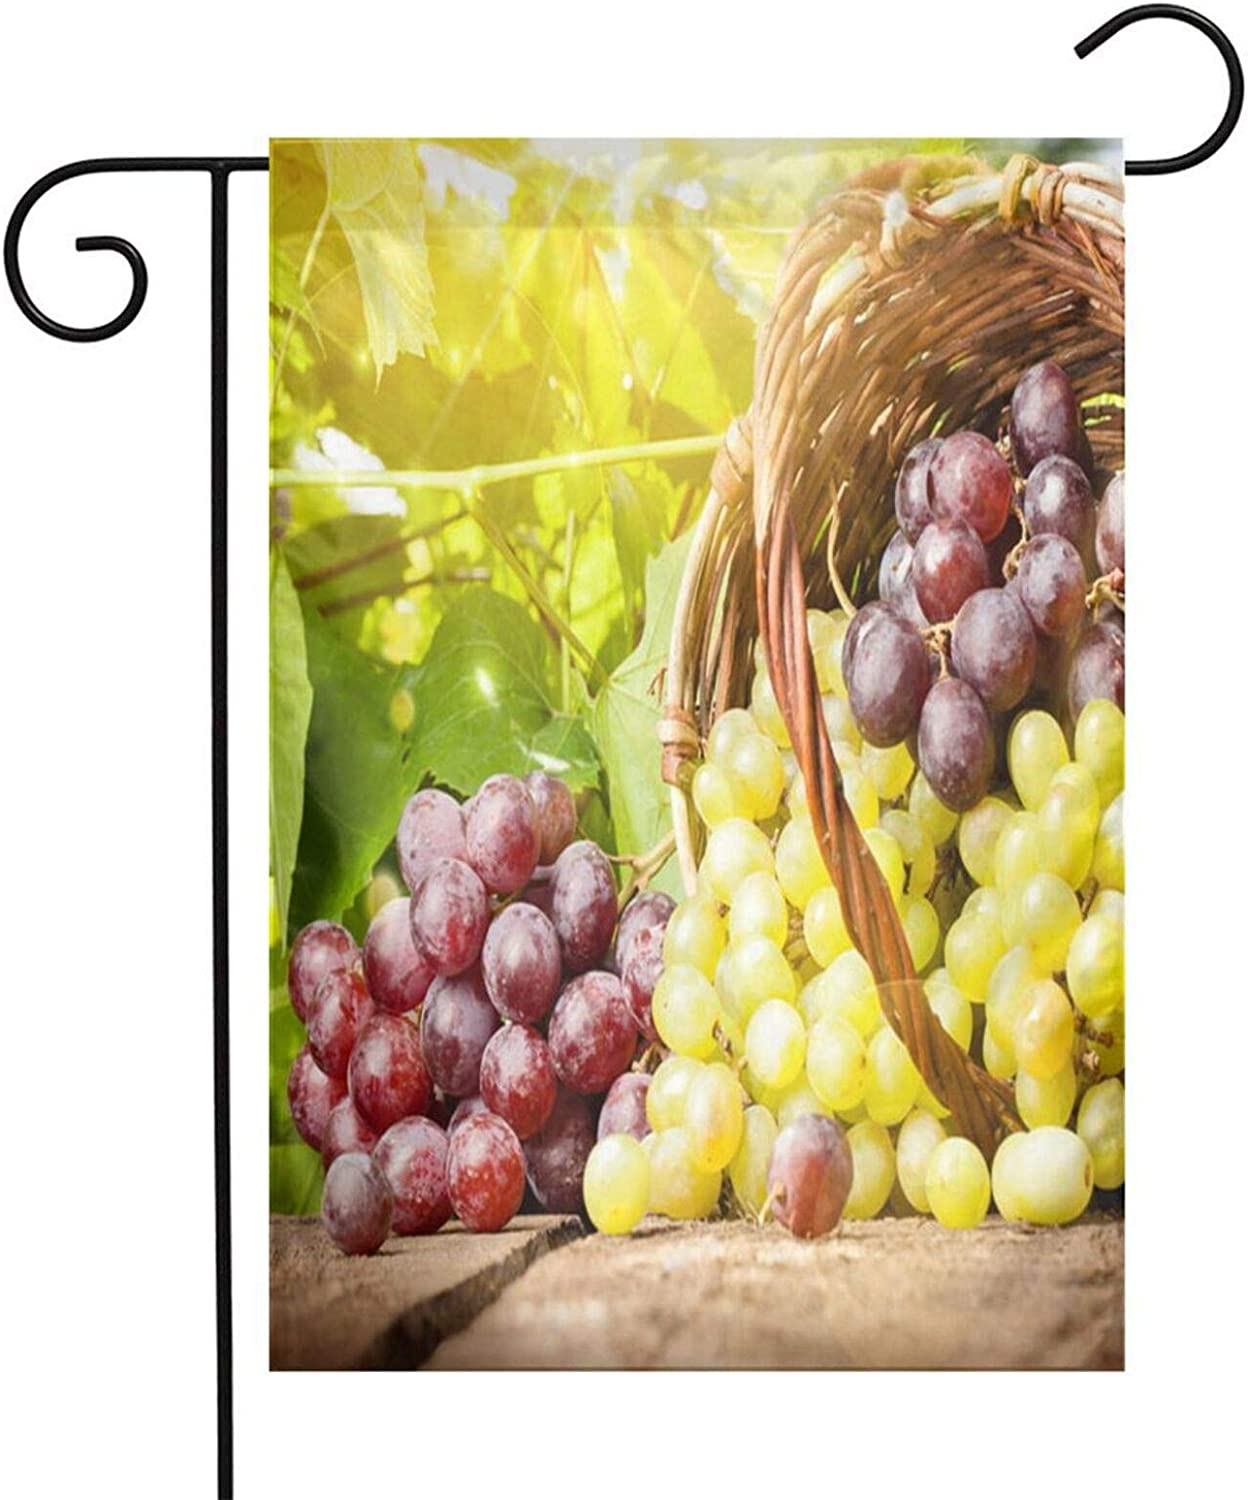 HHTZTCL Purple Green Grape Sunshine Garden Flags 12 x 18 Inch Holiday Yard Outdoor House Flag Banner for Party Home Decorations